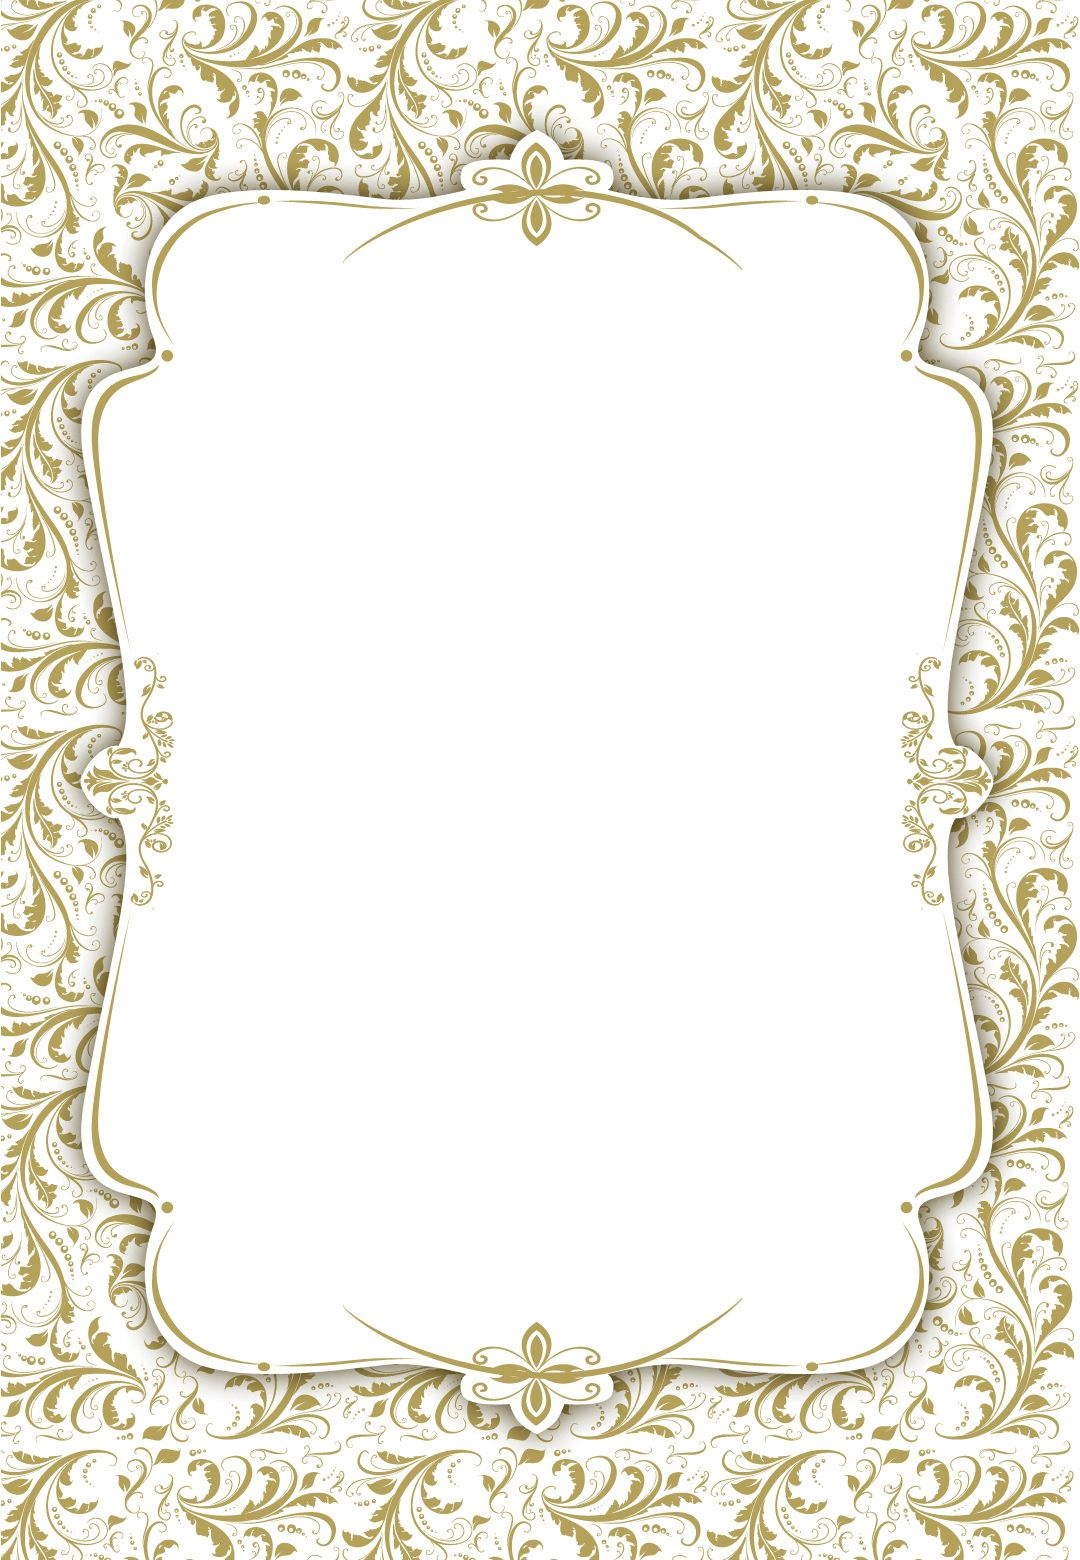 Blank Wedding Invitation Templates Clipart Images Gallery ...